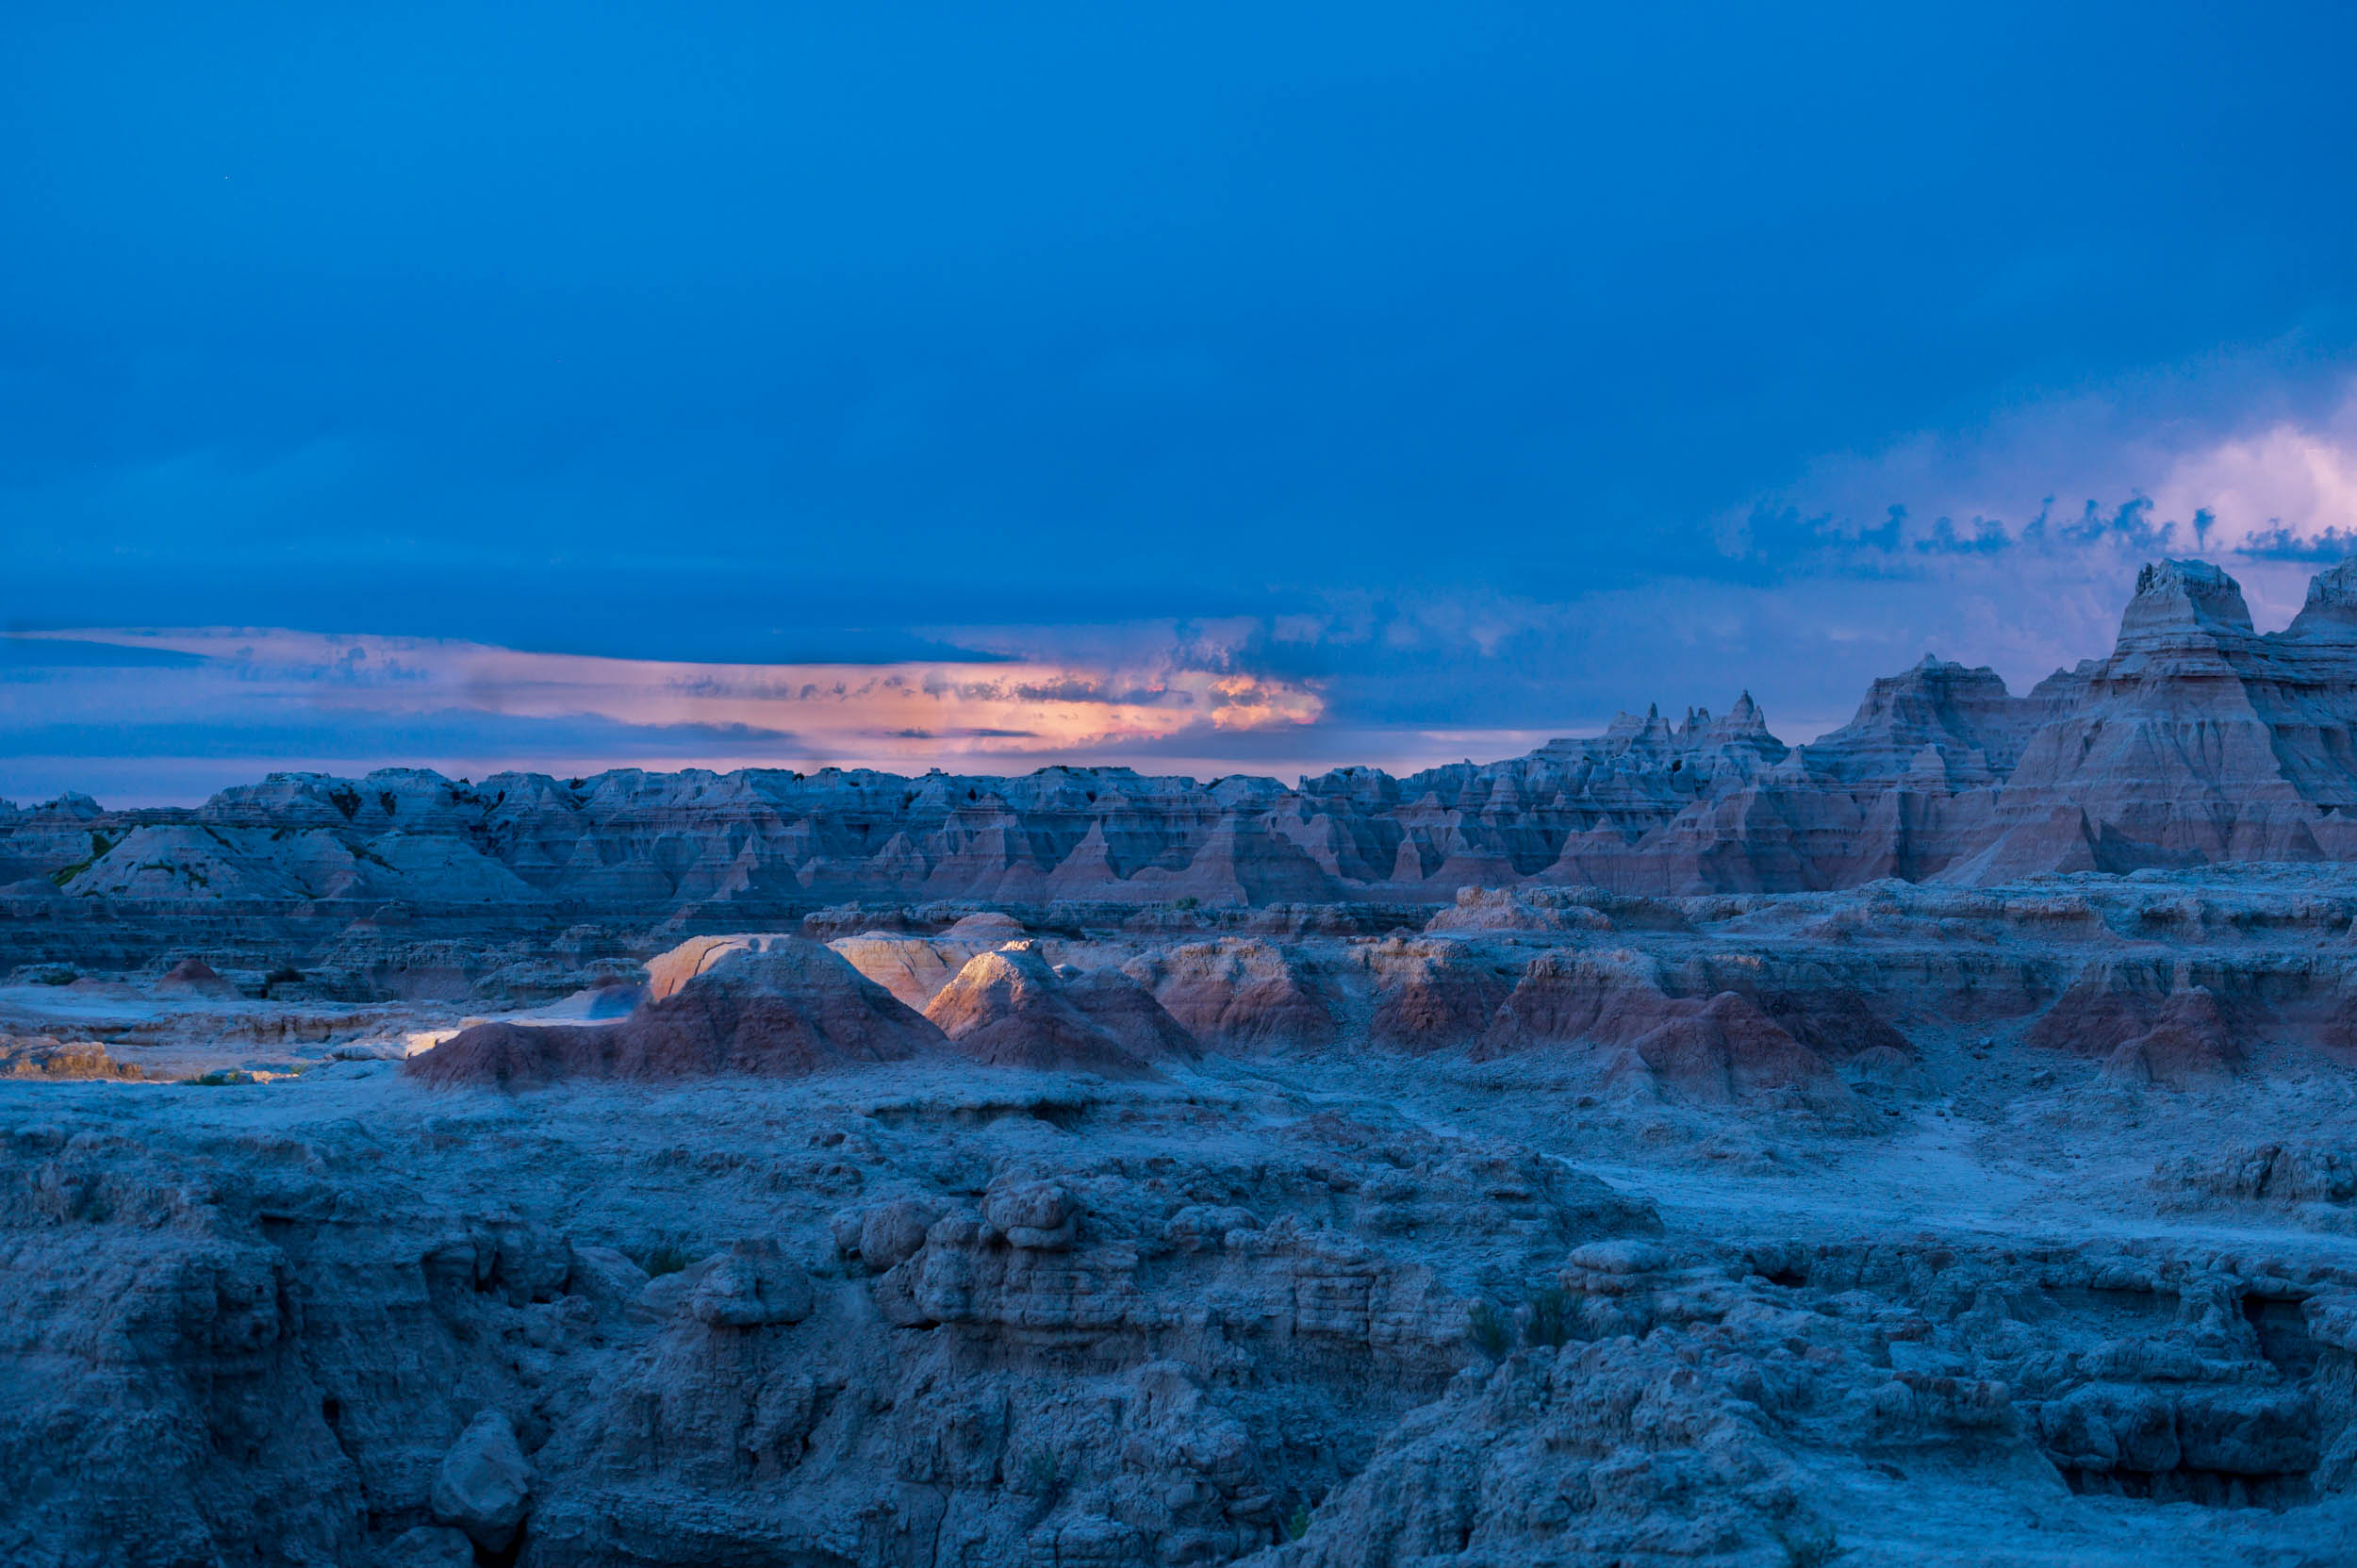 <p><strong>Badlands National Park (Waitlist)</strong><br/> August 9-14, 2020</p>